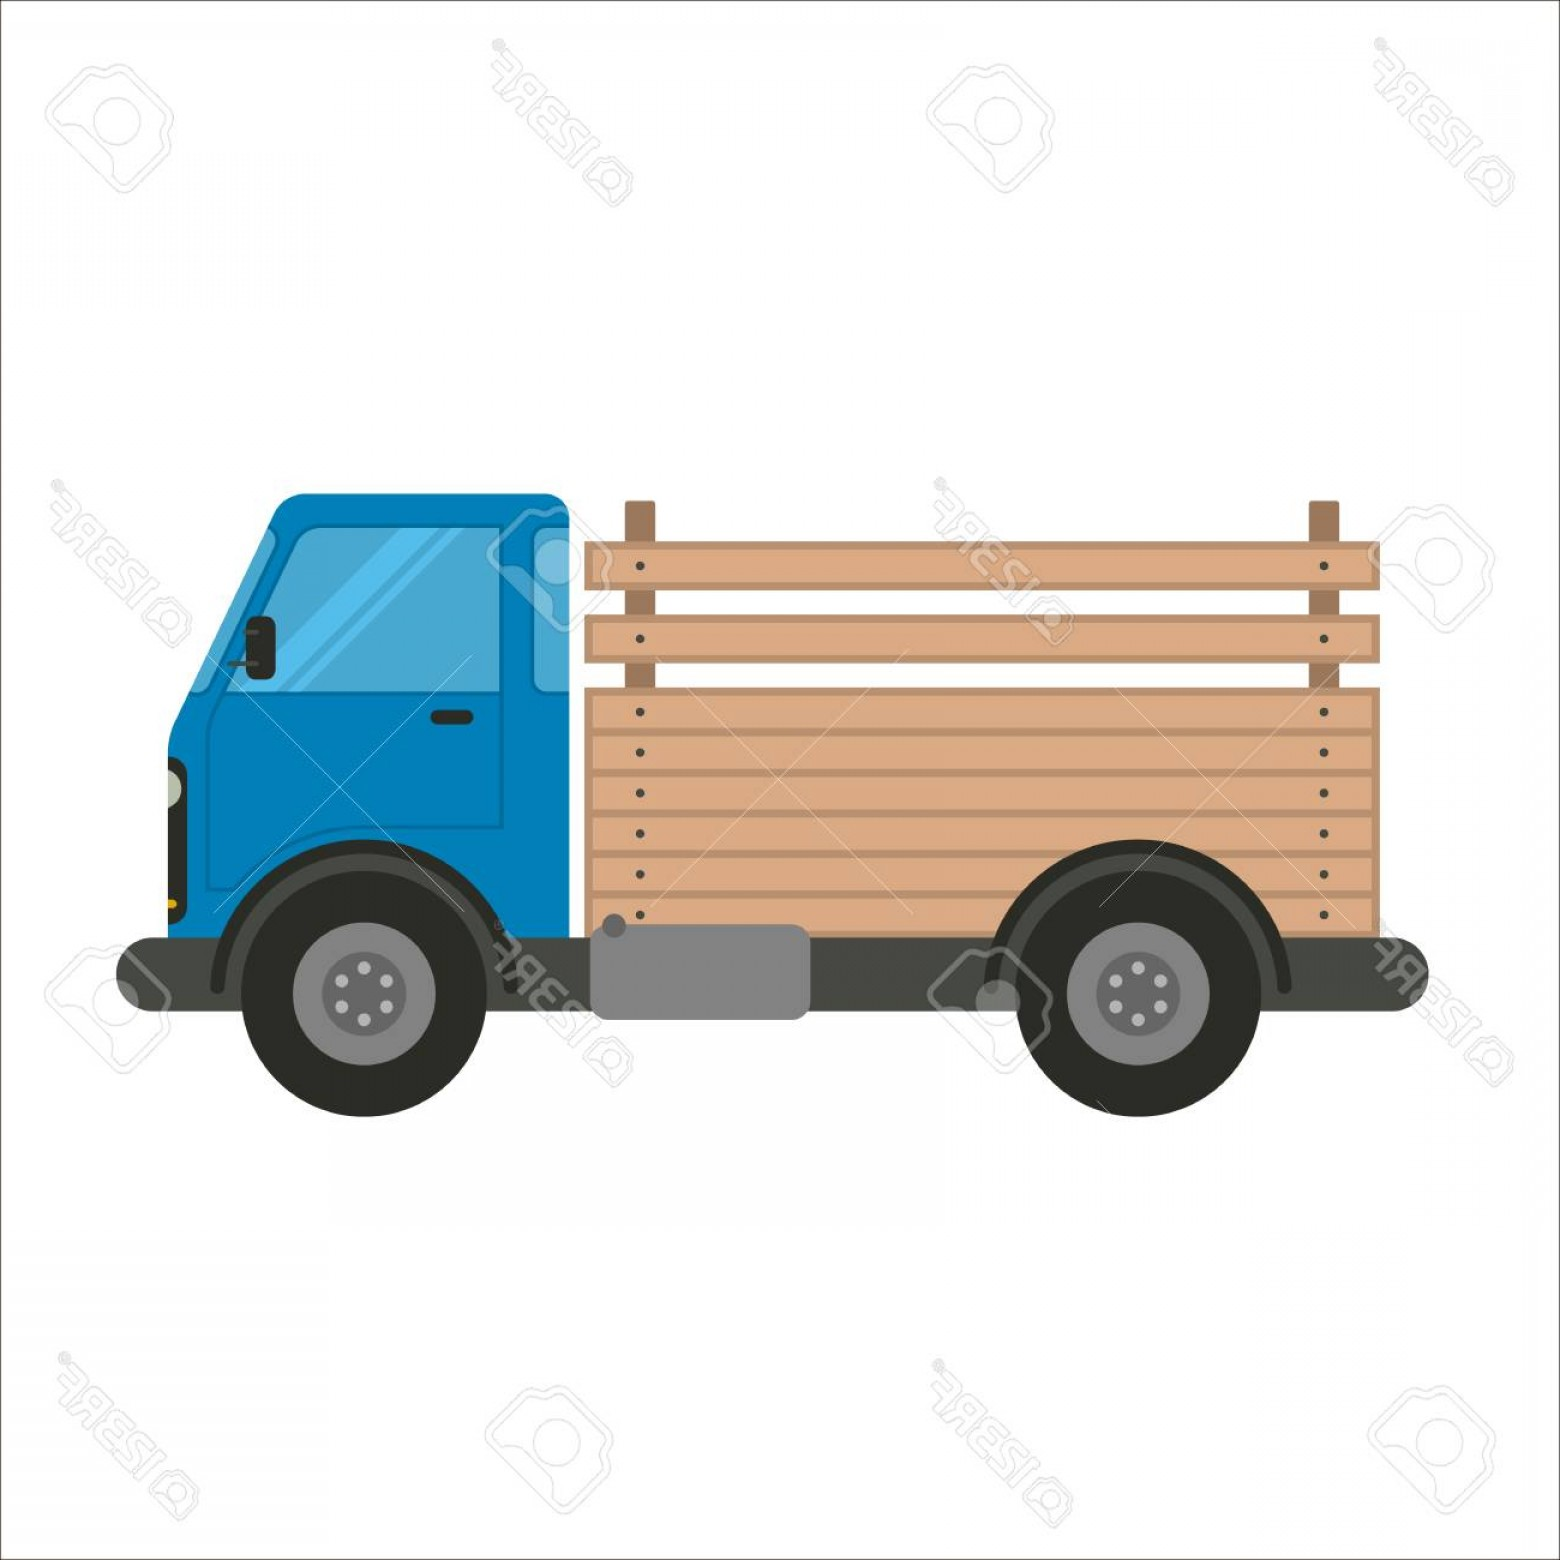 Packages On A Truck Vector: Photostock Vector Pick Up Truck Vector Flat Illustration Trucking And Delivery Car Side View Blue Truck Car With Woode